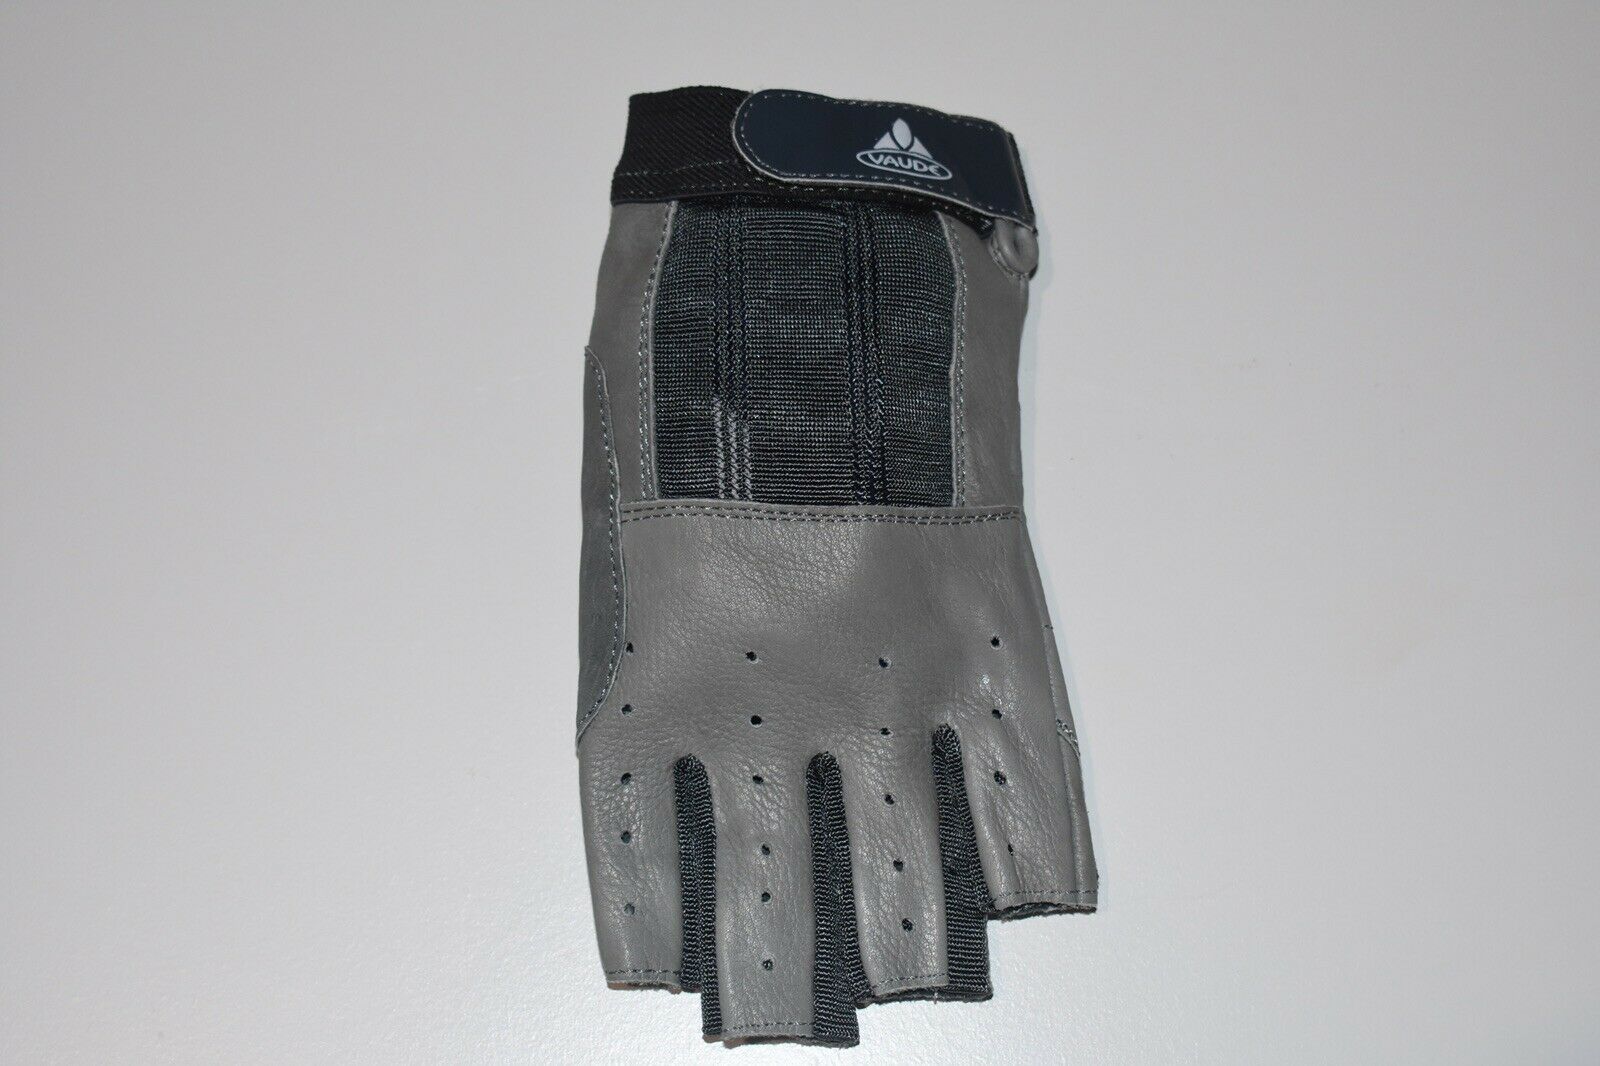 Vaude Genuine Leather Cycling Workout Weight Lifting And Gym Gloves (Small).